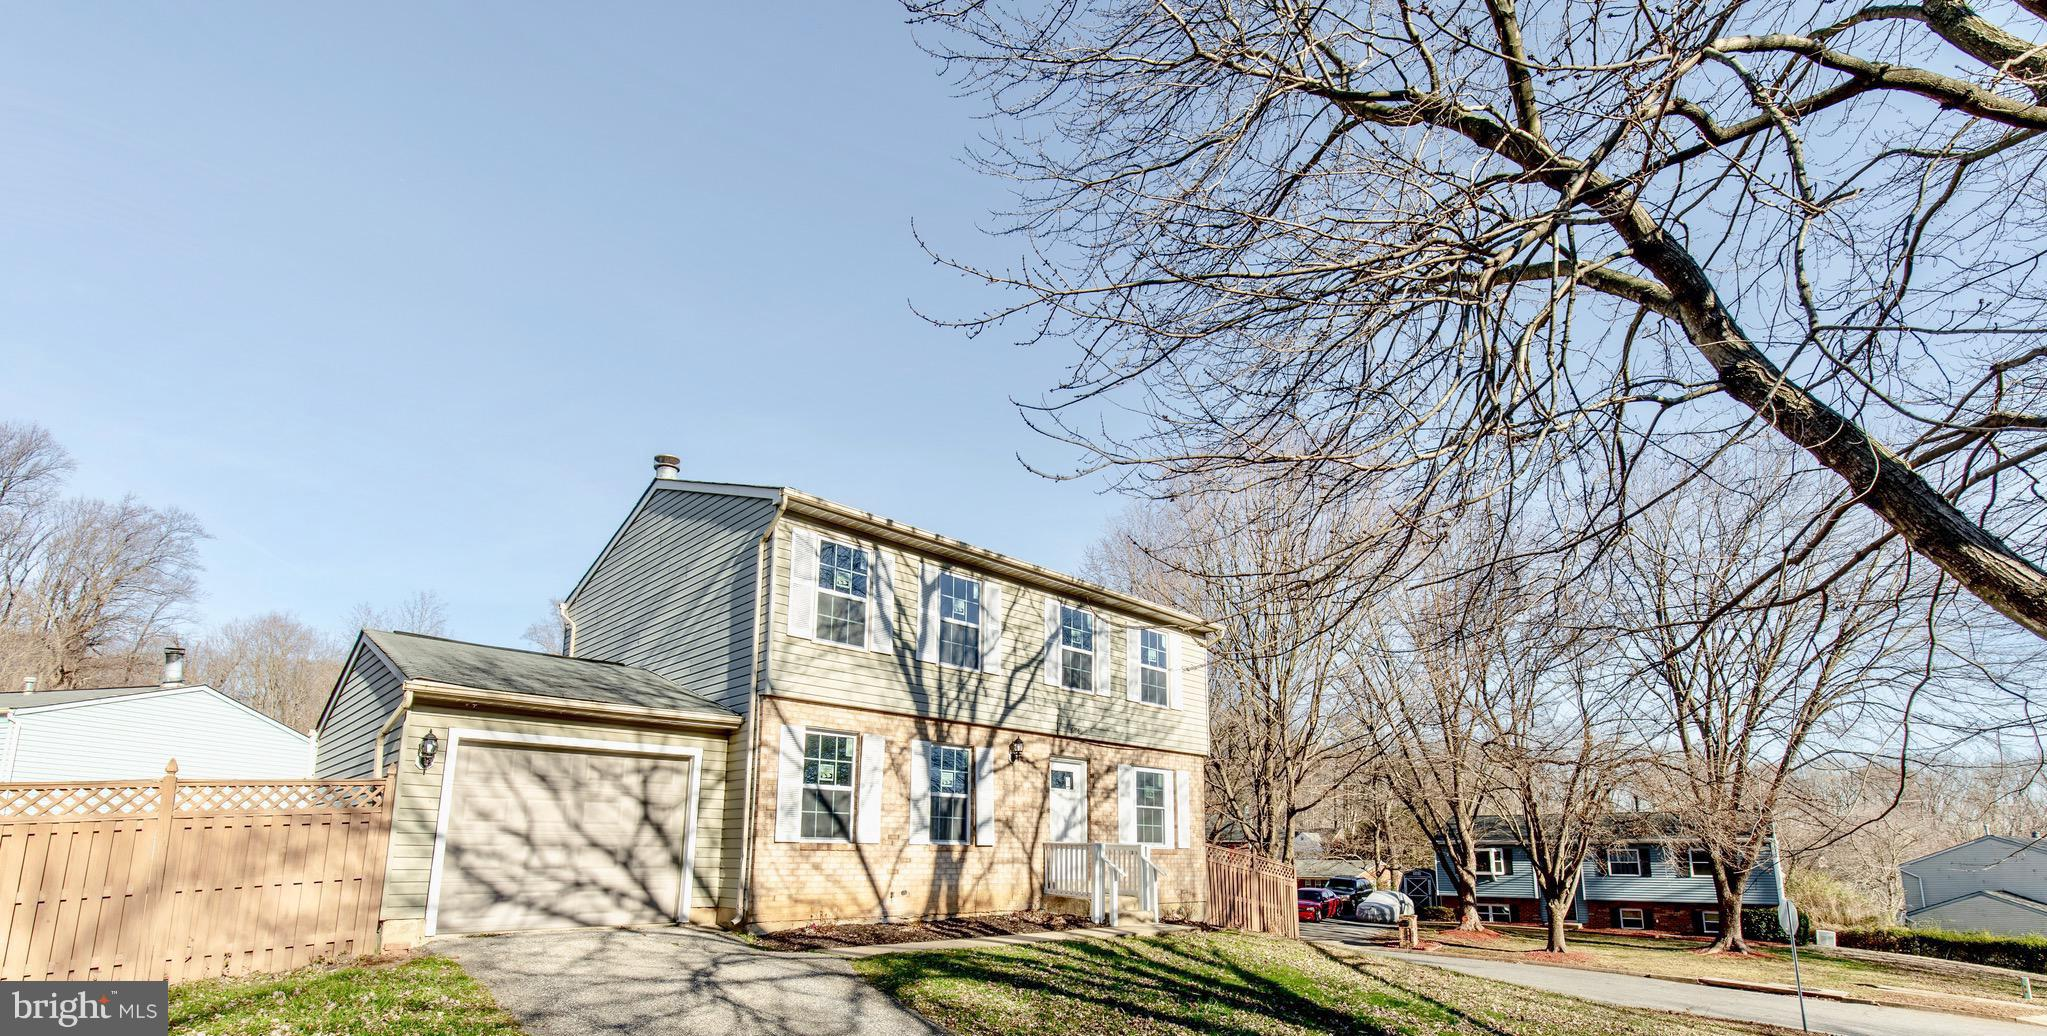 6106 SOUTHGATE DRIVE, TEMPLE HILLS, MD 20748